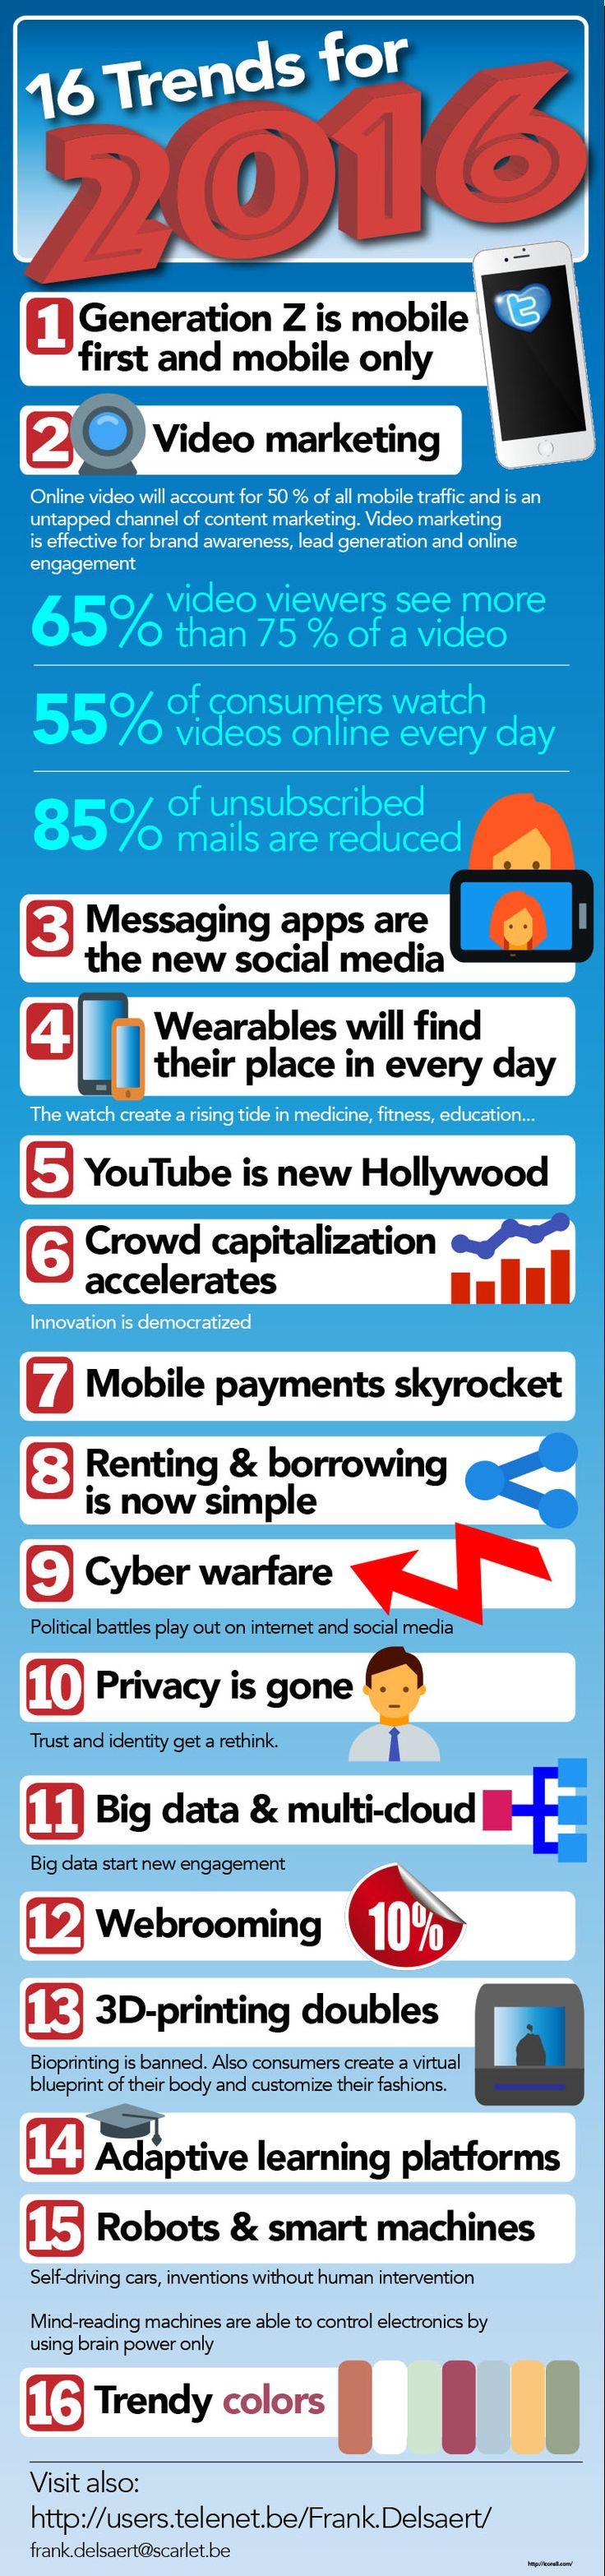 16 Trends for 2016 - #entrepreneur #startups